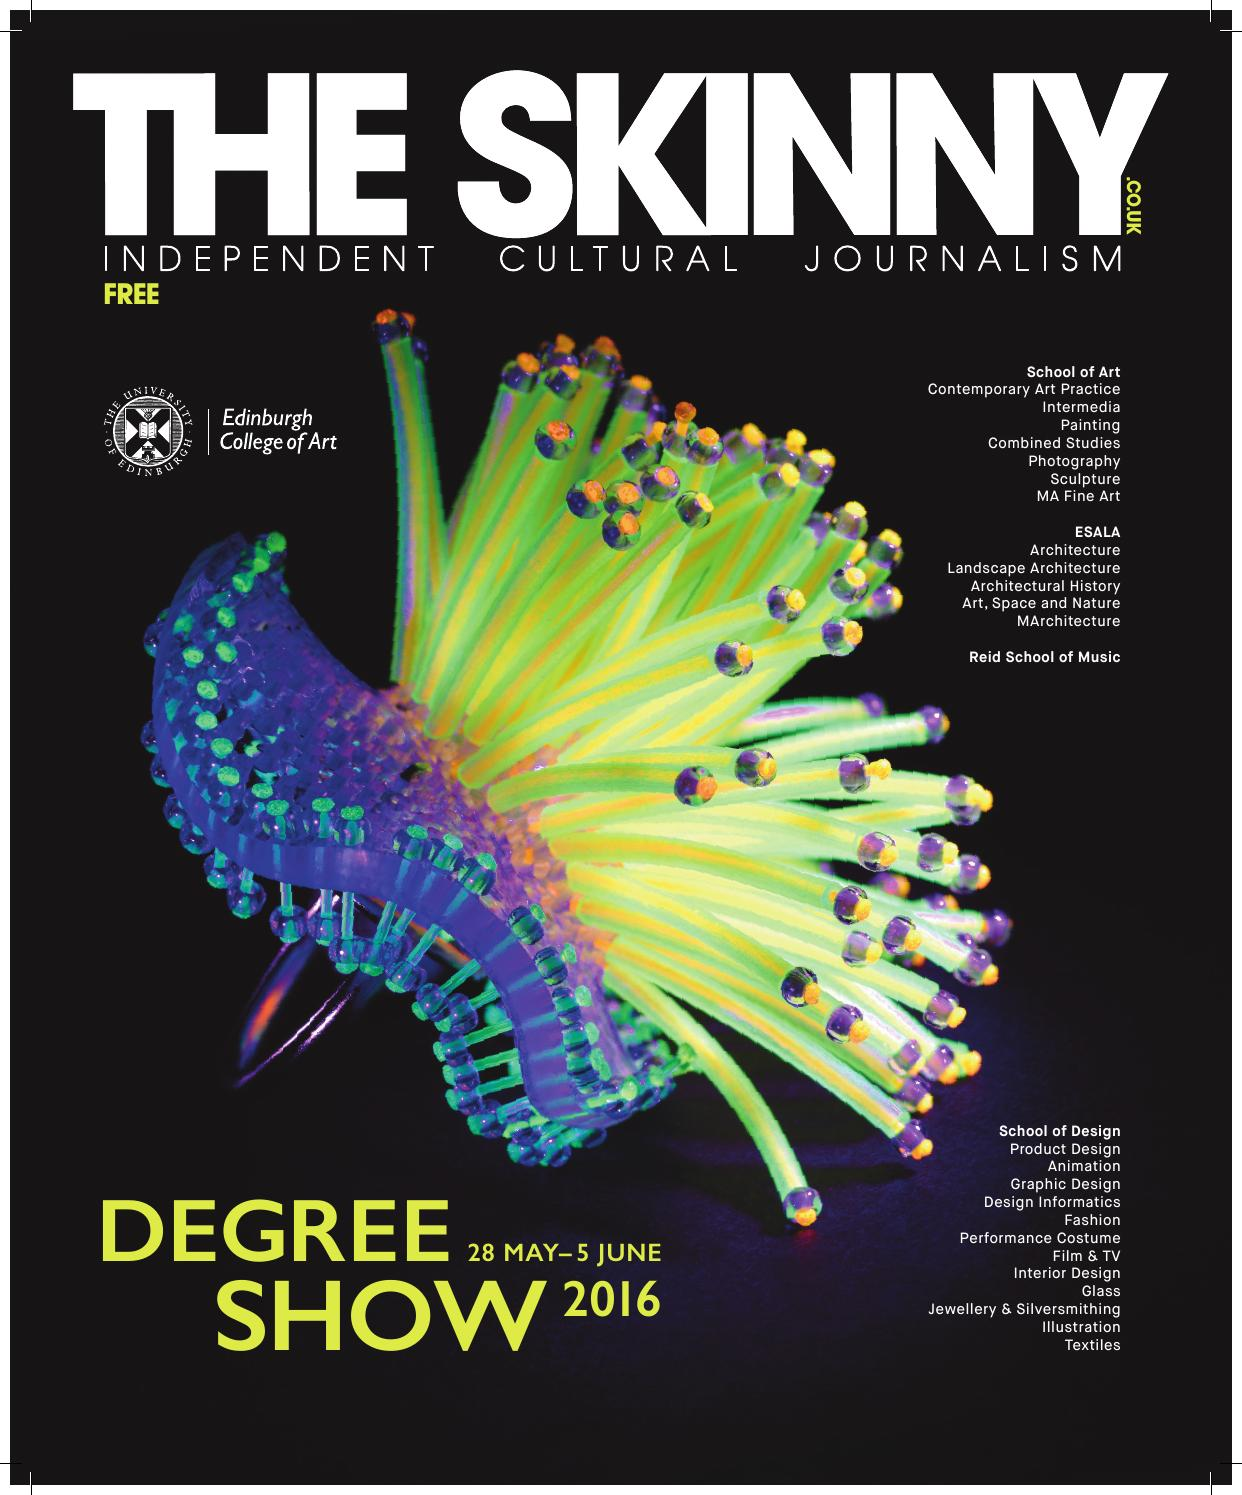 The Skinny Edinburgh College Of Art Degree Show Supplement 2016 By The Skinny Issuu